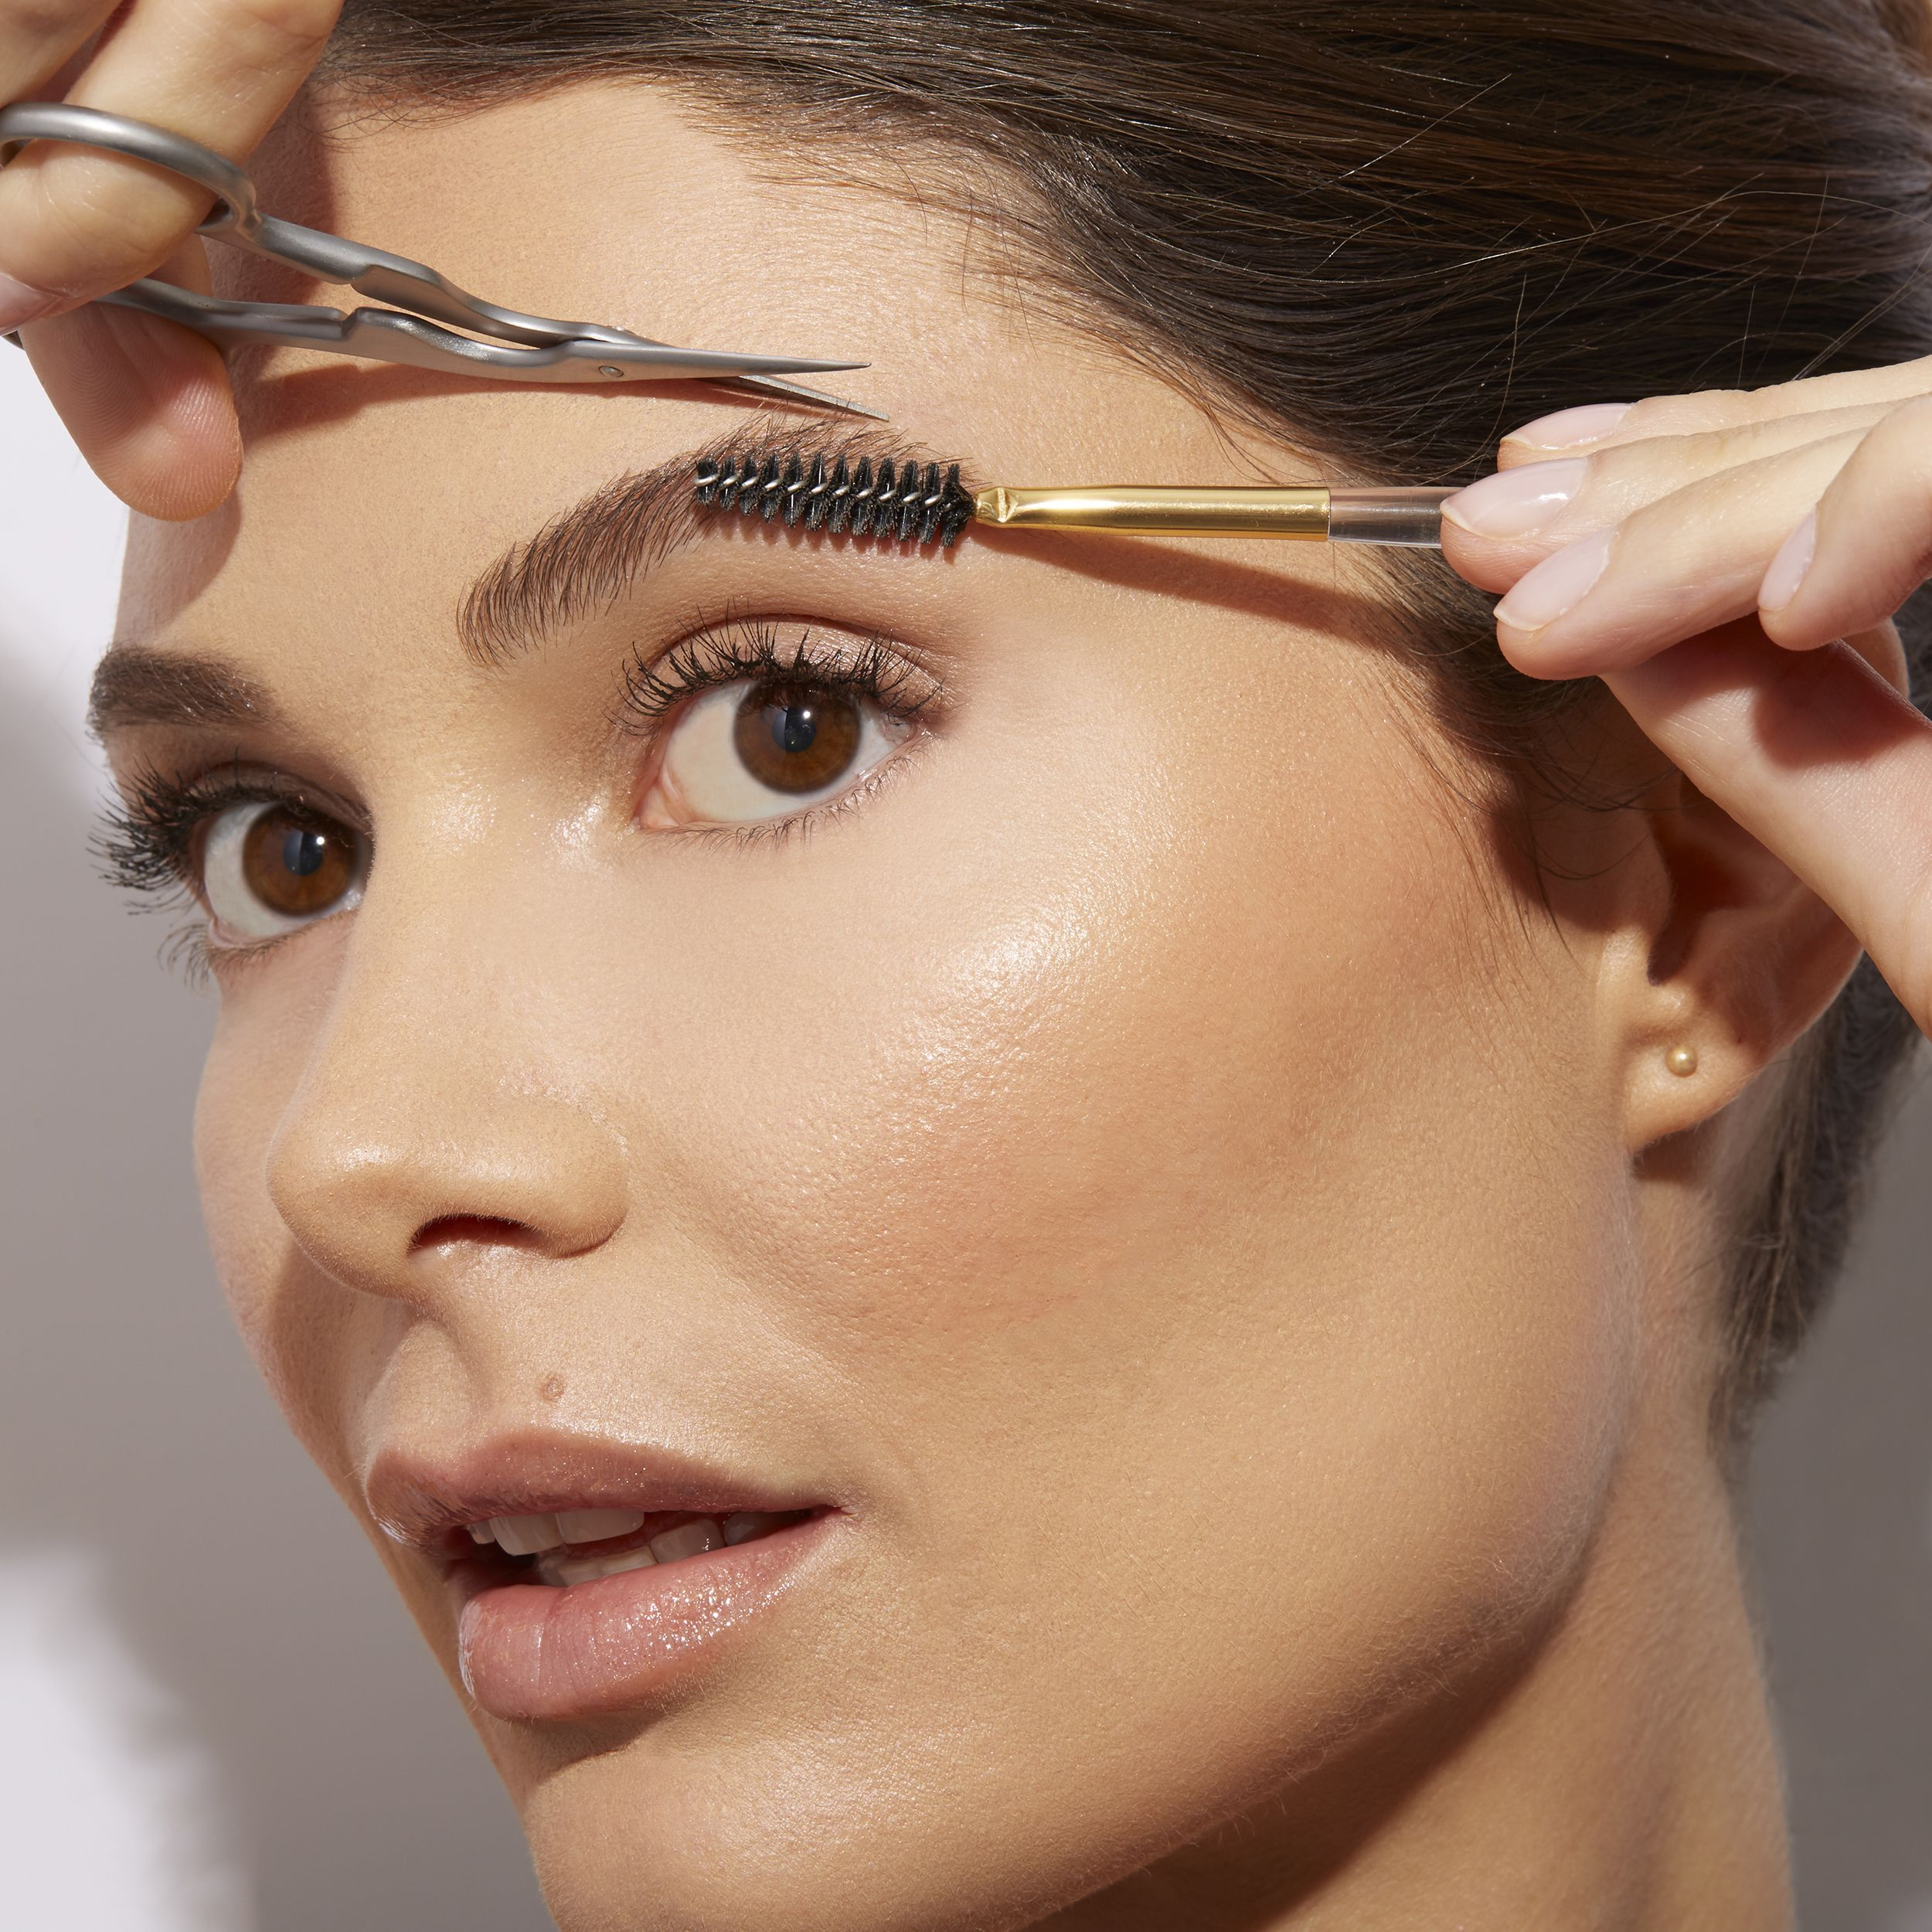 Brow Shaping Scissors & Brush in 2020 | Brow shaping, How ...